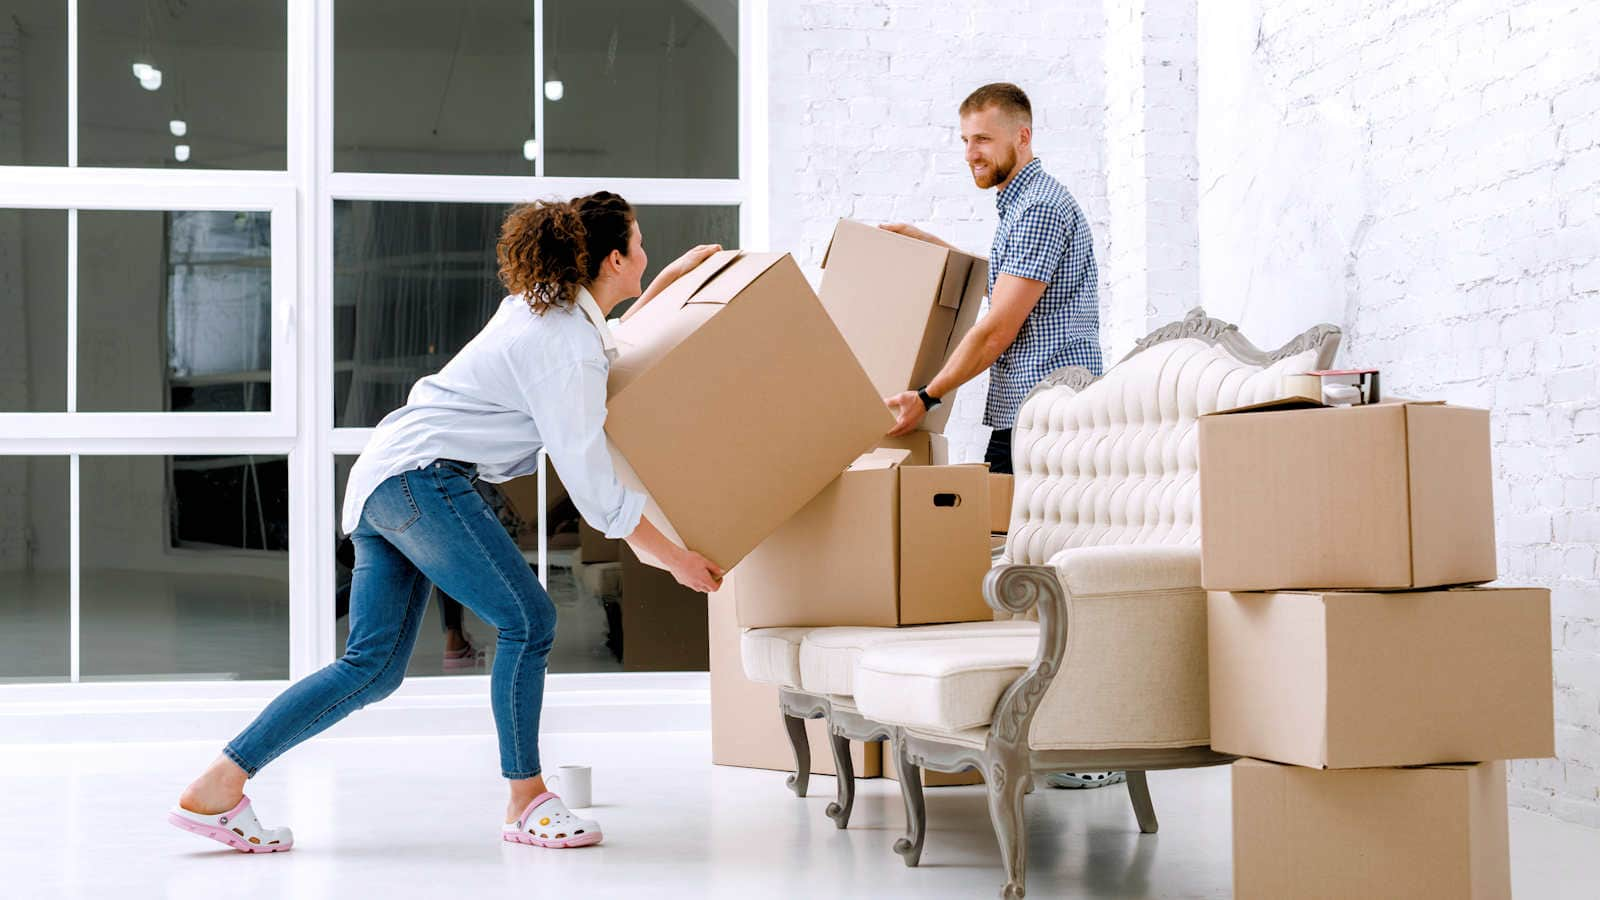 The Smooth Movers, Removalists Perth of South Fremantle